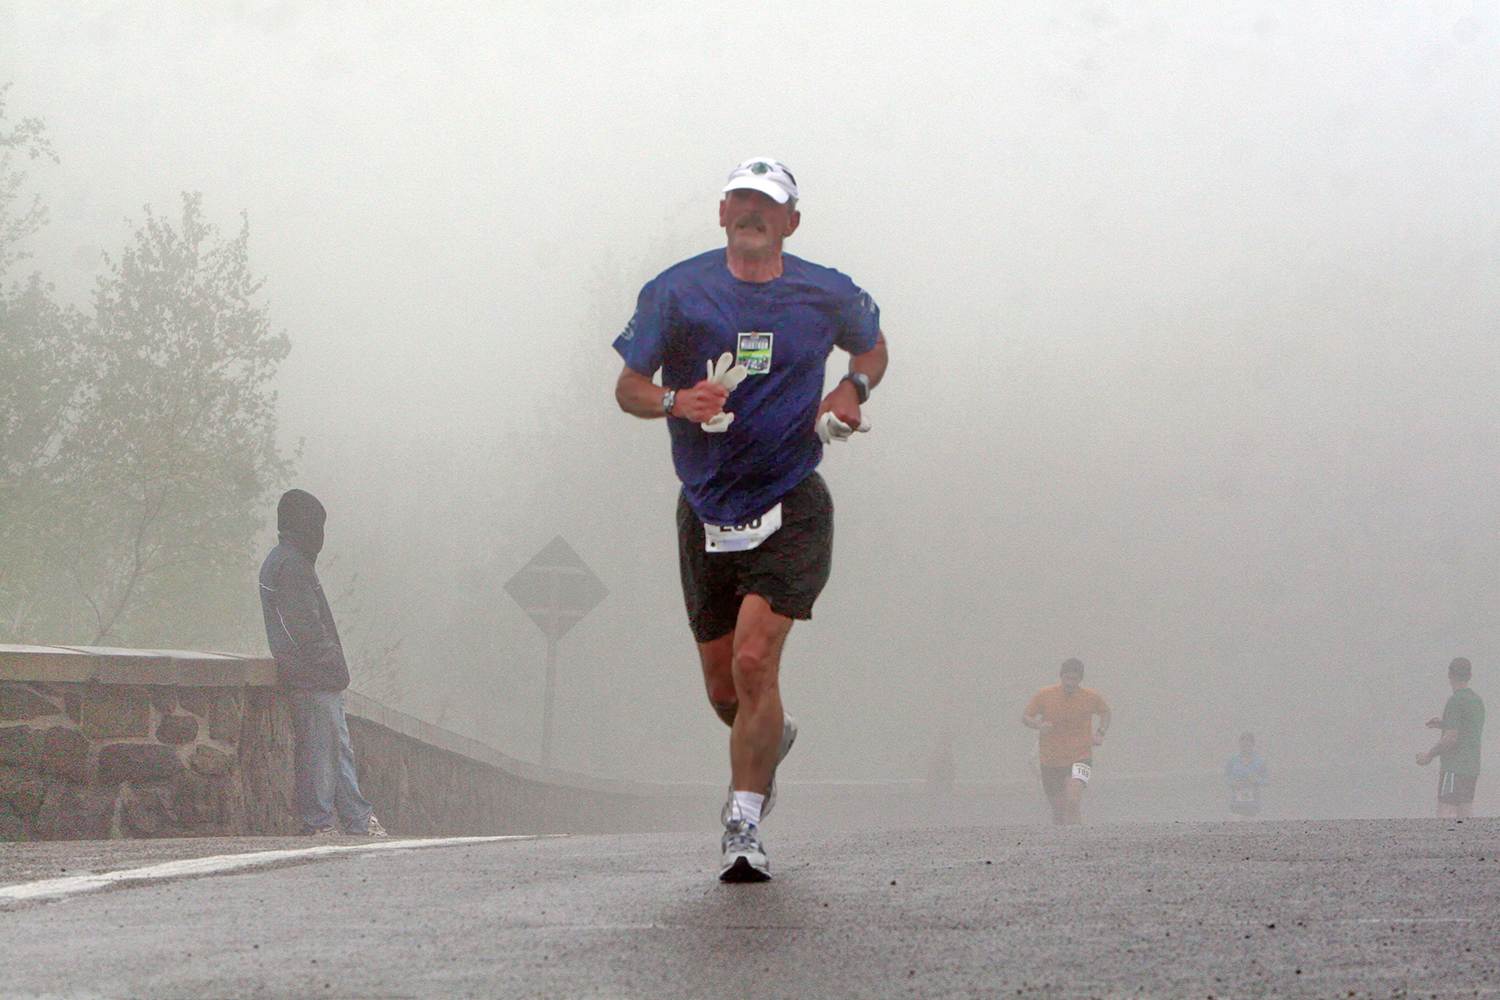 In 2010, Dan Olden appears out of Prospect's fog like an apparition.  Brian Teague/Fateague Fotos